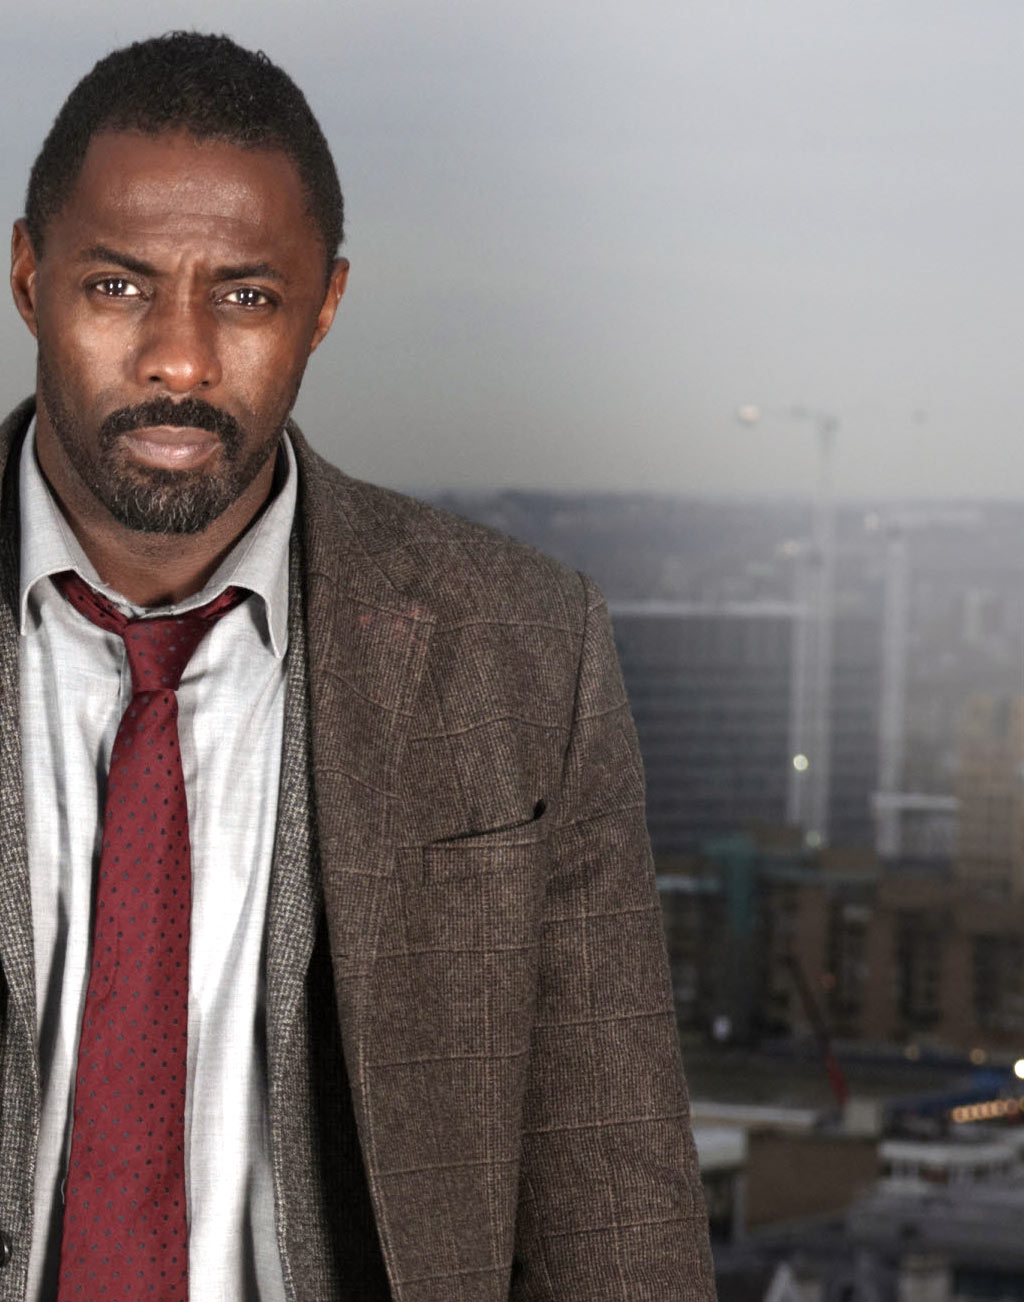 Idris Elba in Luther season 3